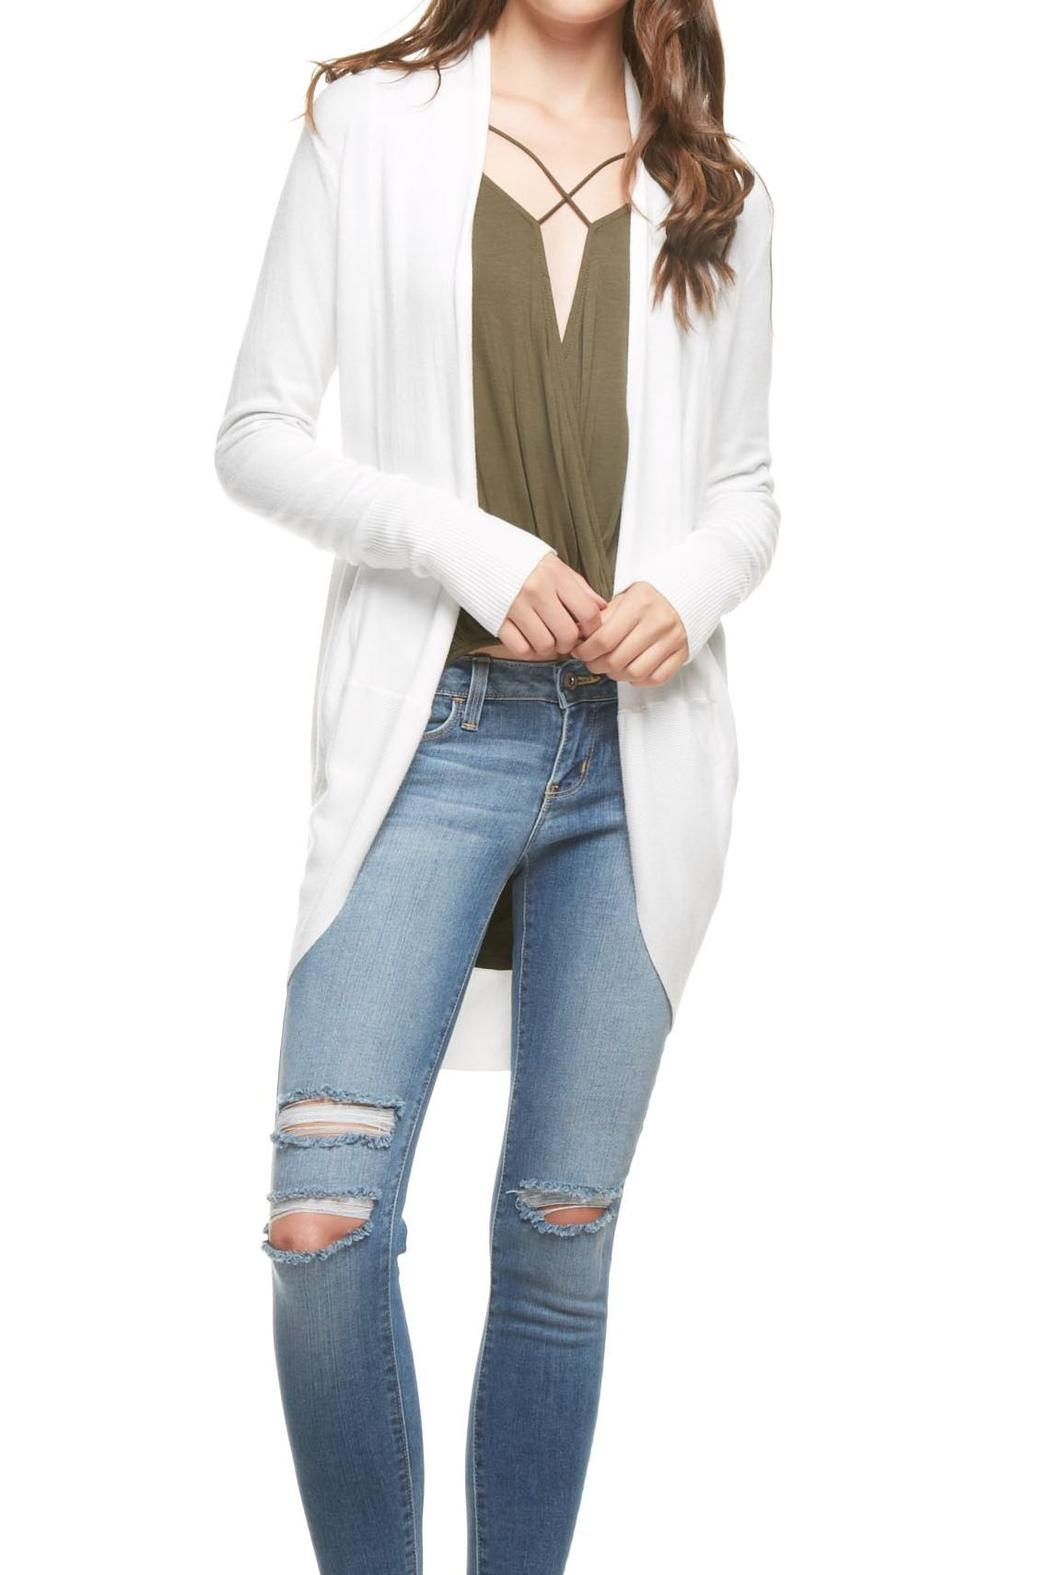 e22260c4c7acc Dreamers Off White Cardigan from Kansas by Apricot Lane - Wichita ...